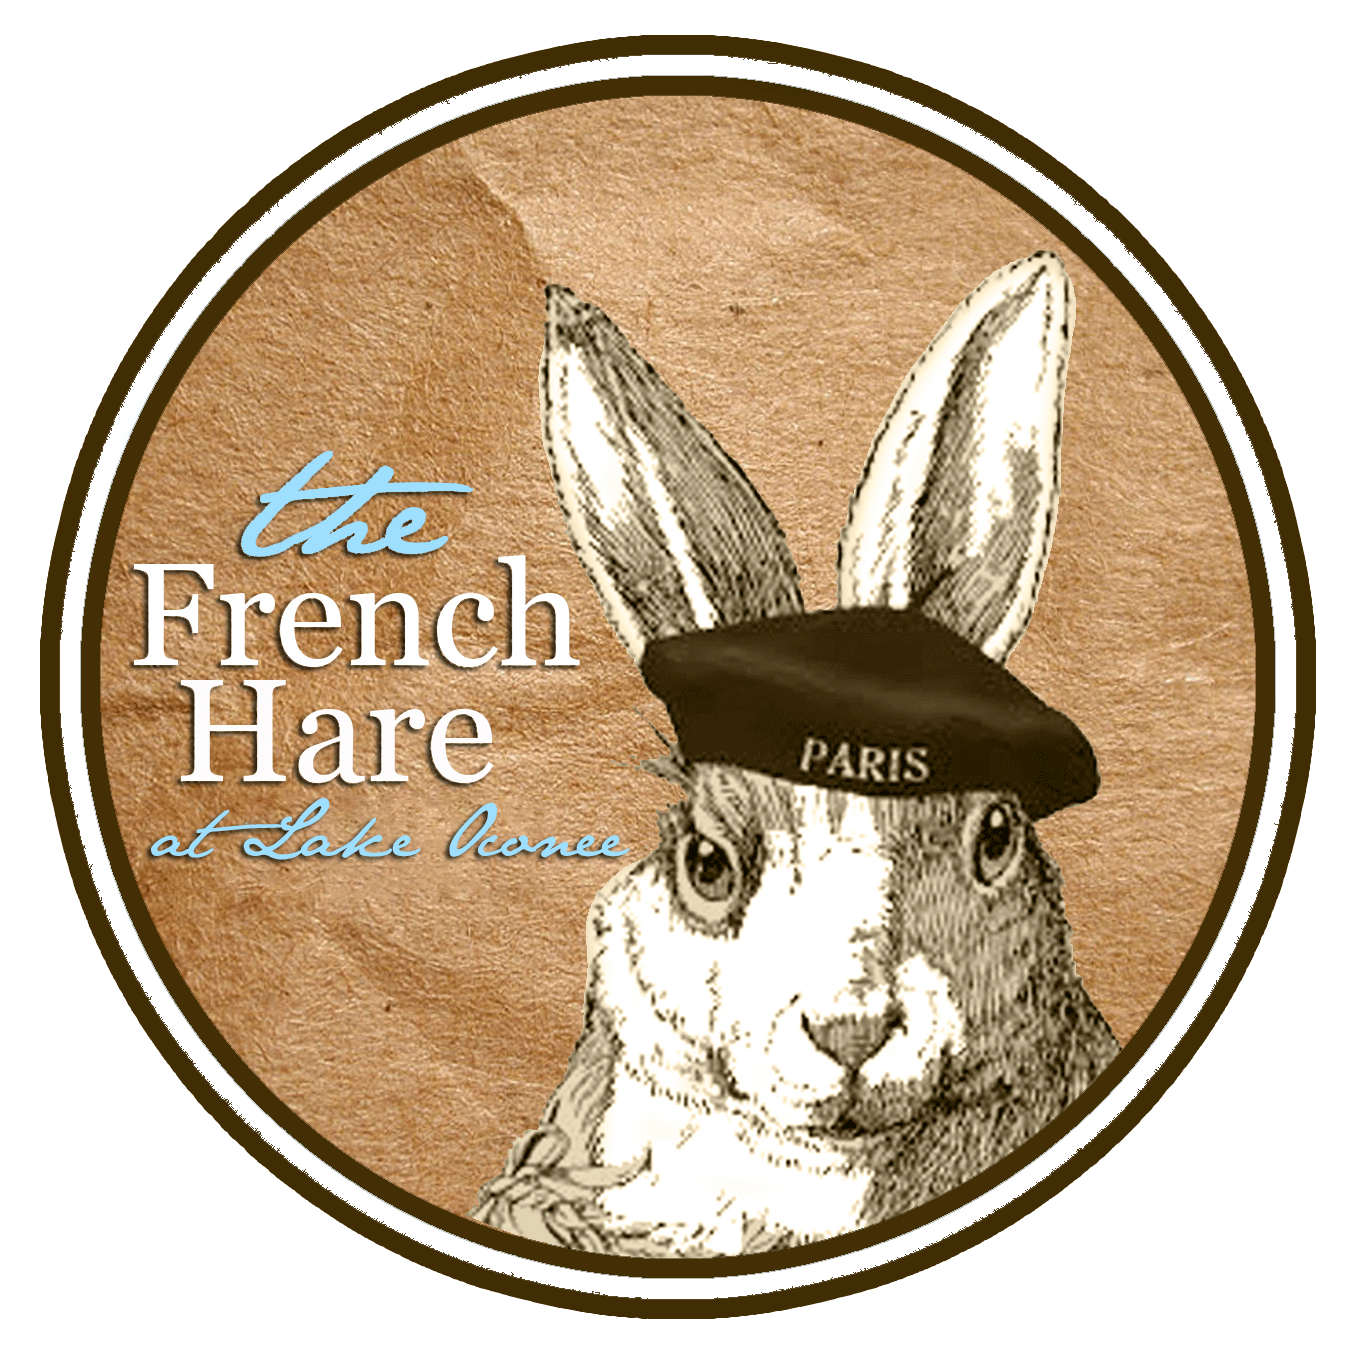 the French Hare